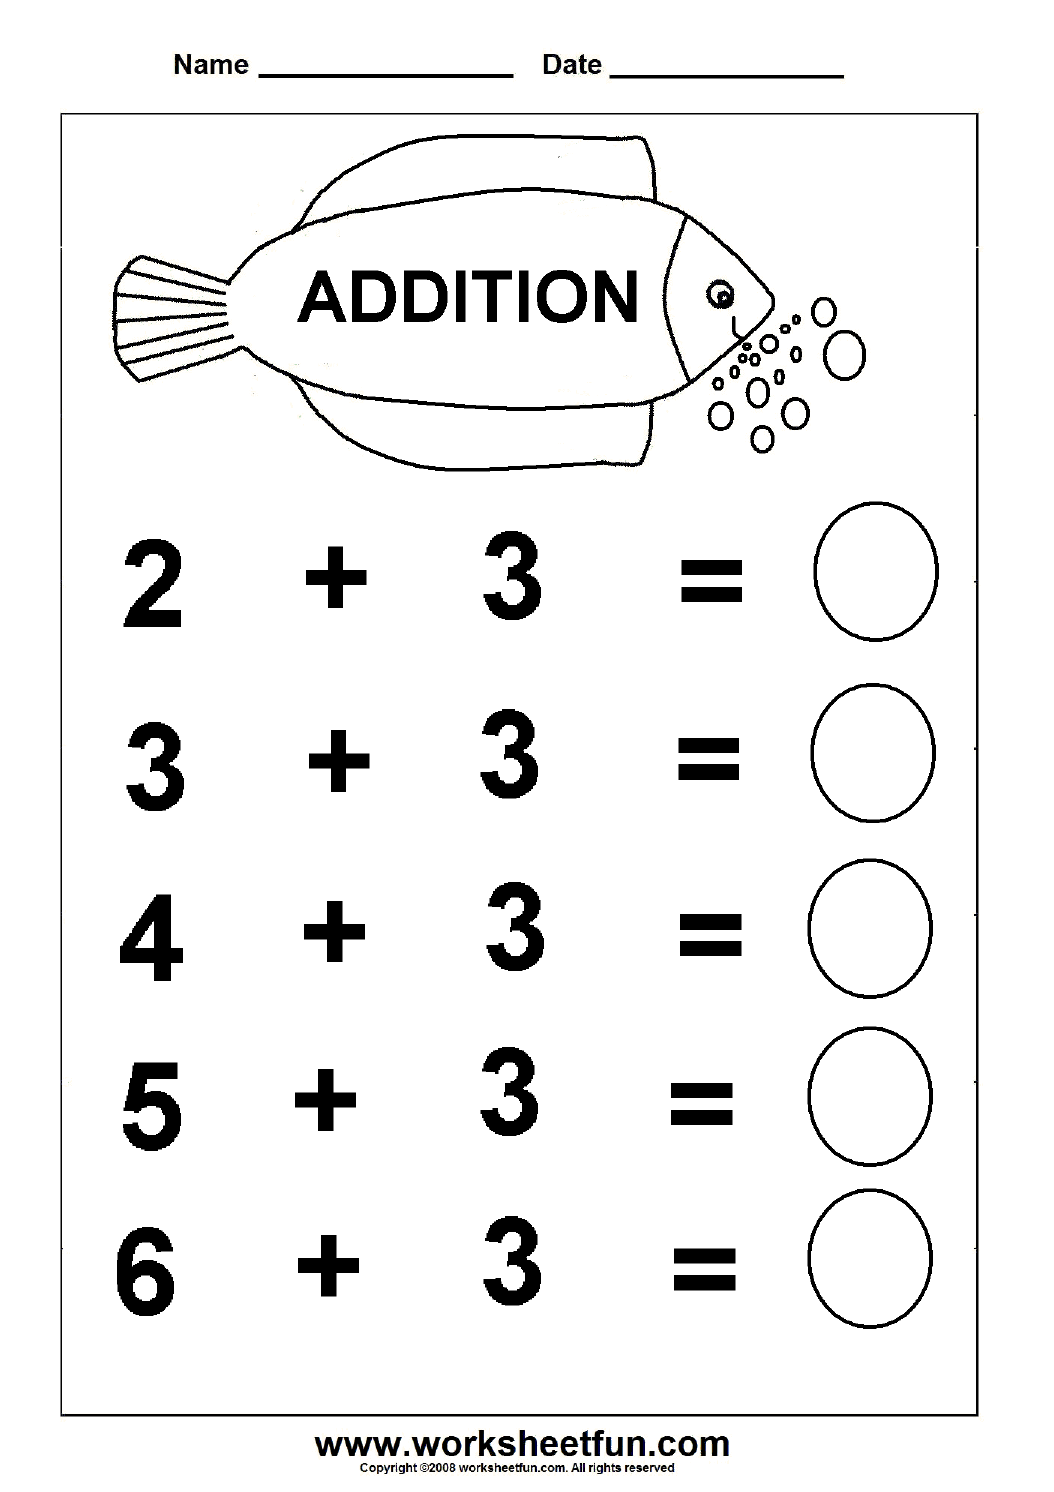 Worksheets Picture Addition Worksheets addition basic facts free printable worksheets beginner 6 kindergarten worksheets